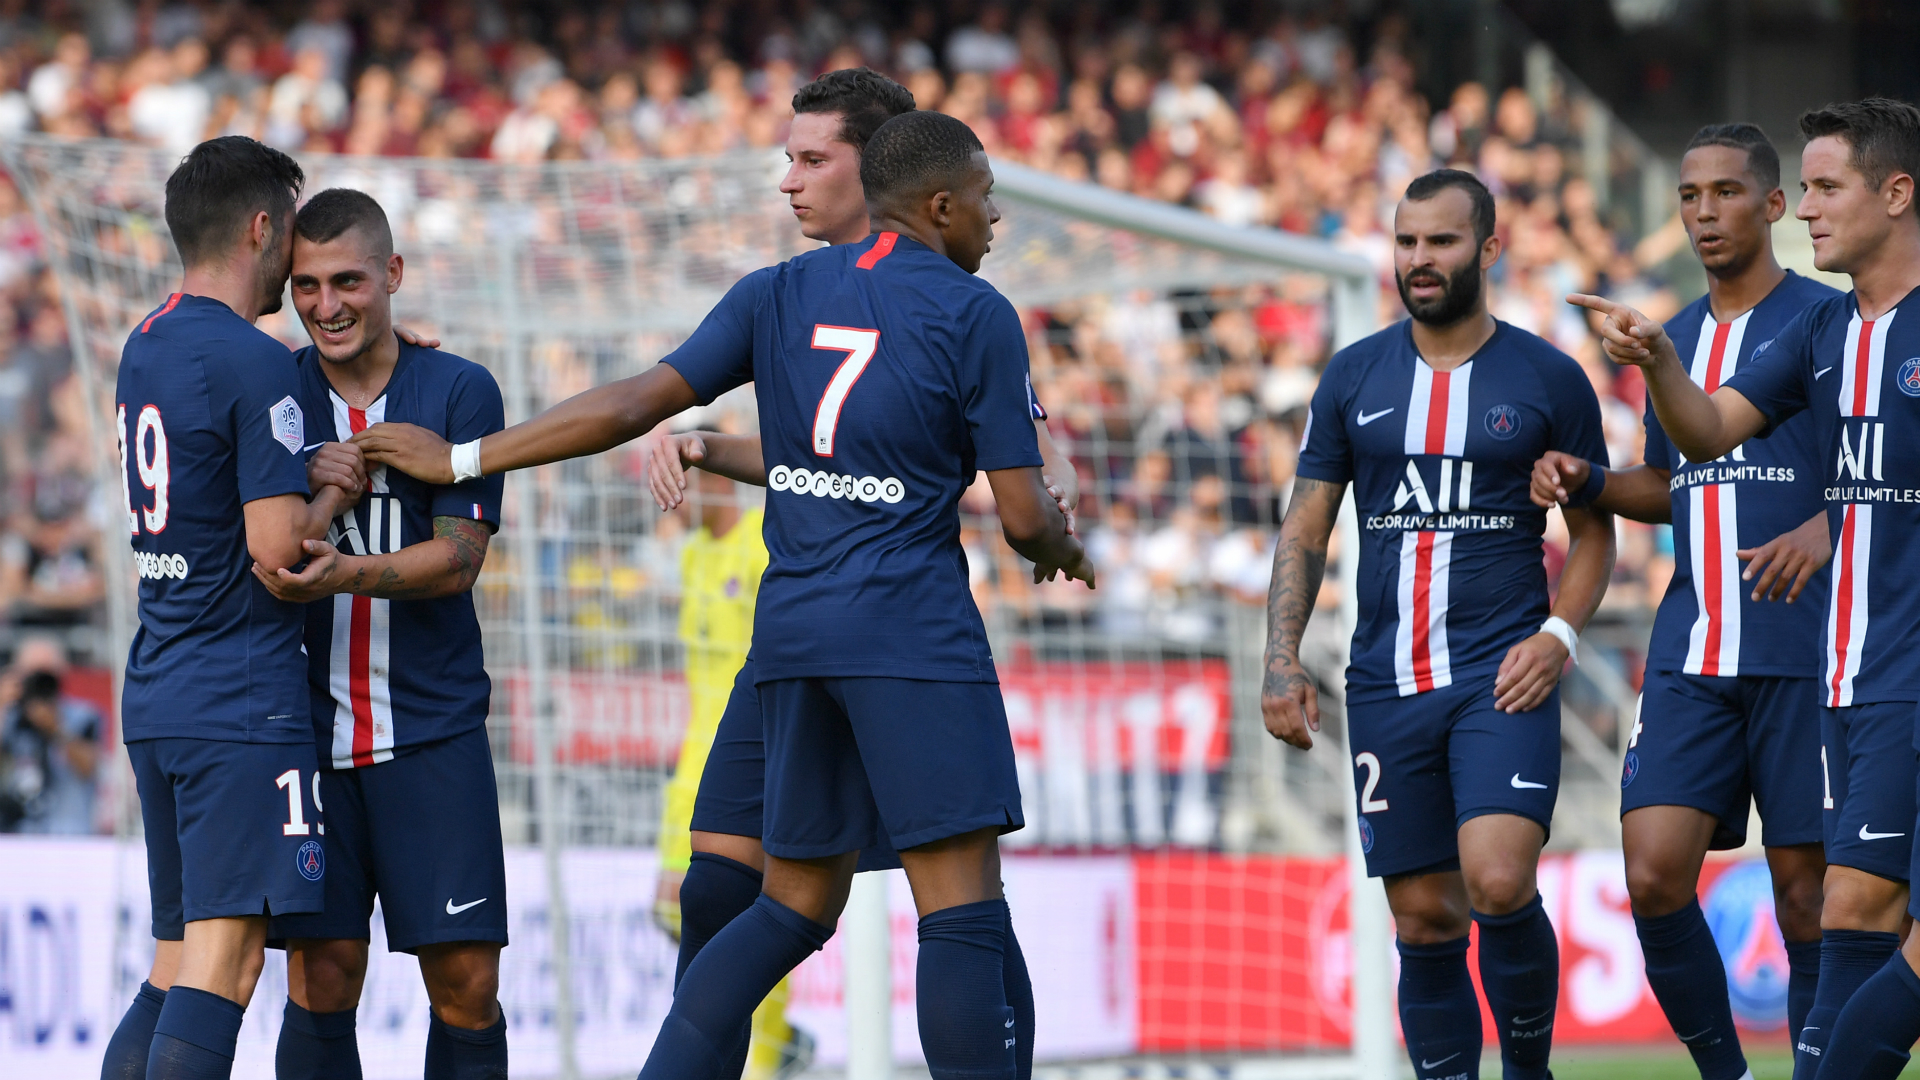 PSG squad is 'all smiles' ahead of new season, says Mbappe